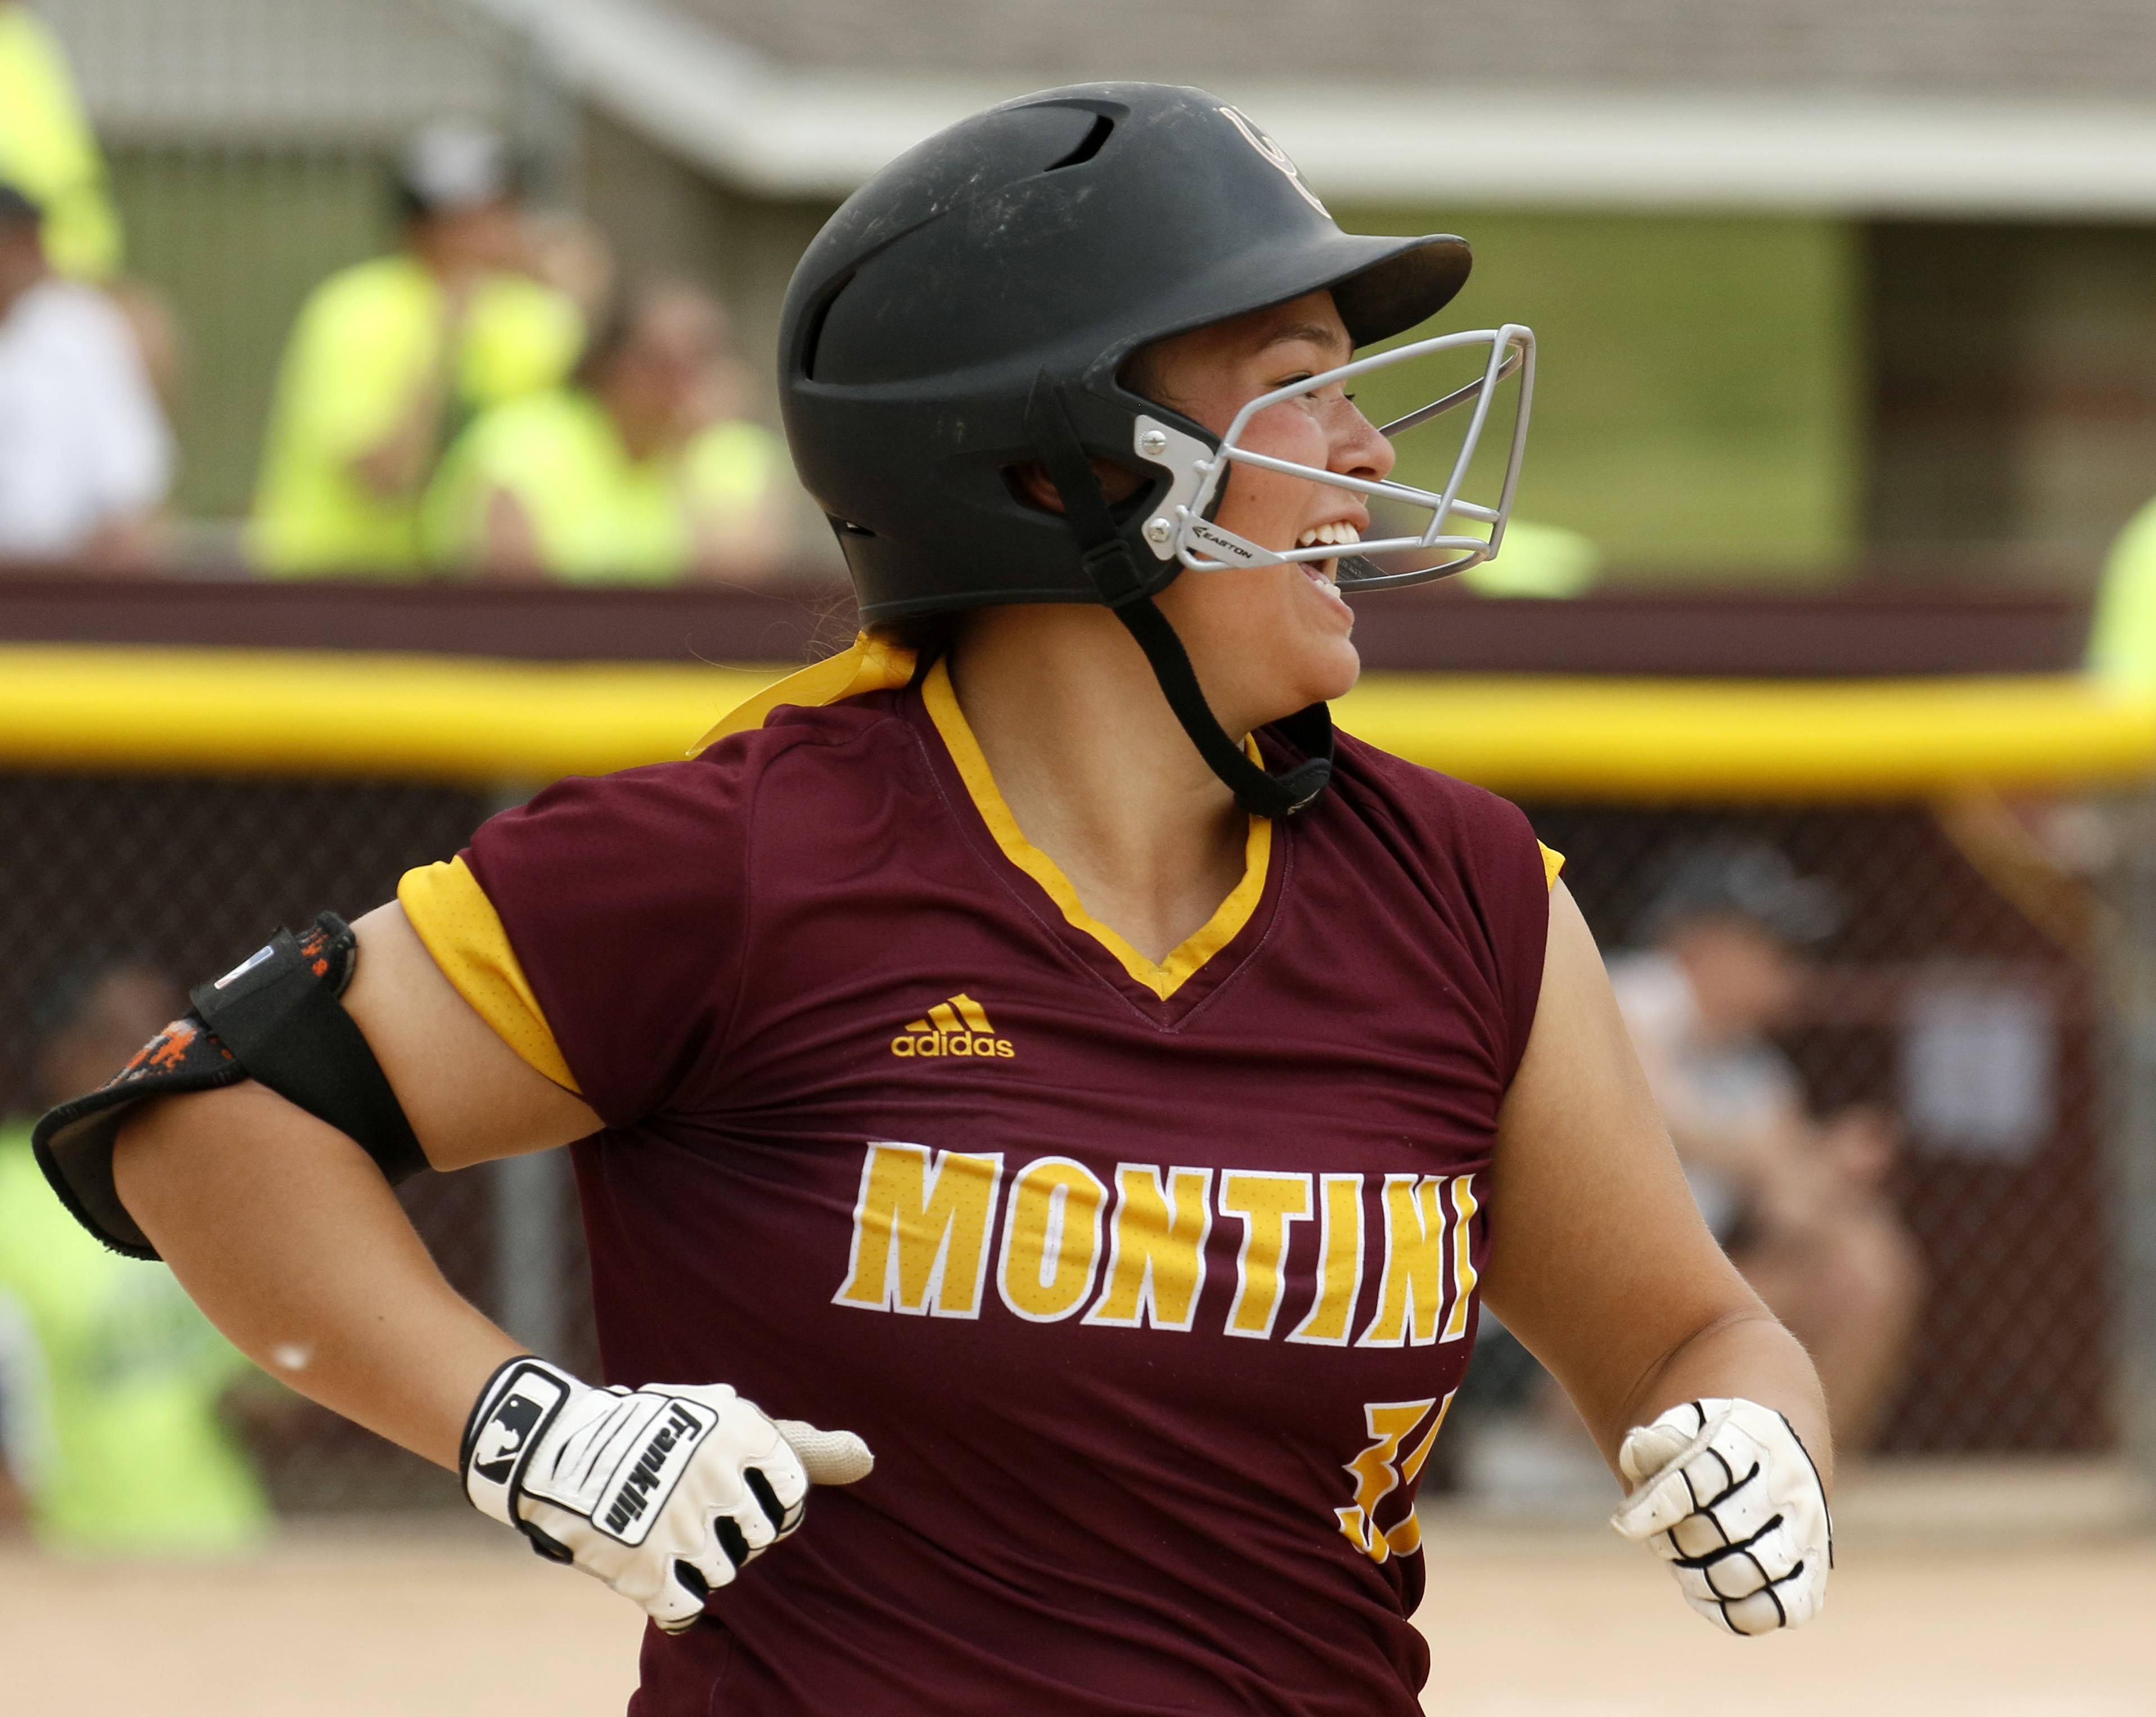 Montini Catholic's Nicole Cuchran (31) rounds first base after hitting a home run against Kaneland during the IHSA Class 3A state softball championship.